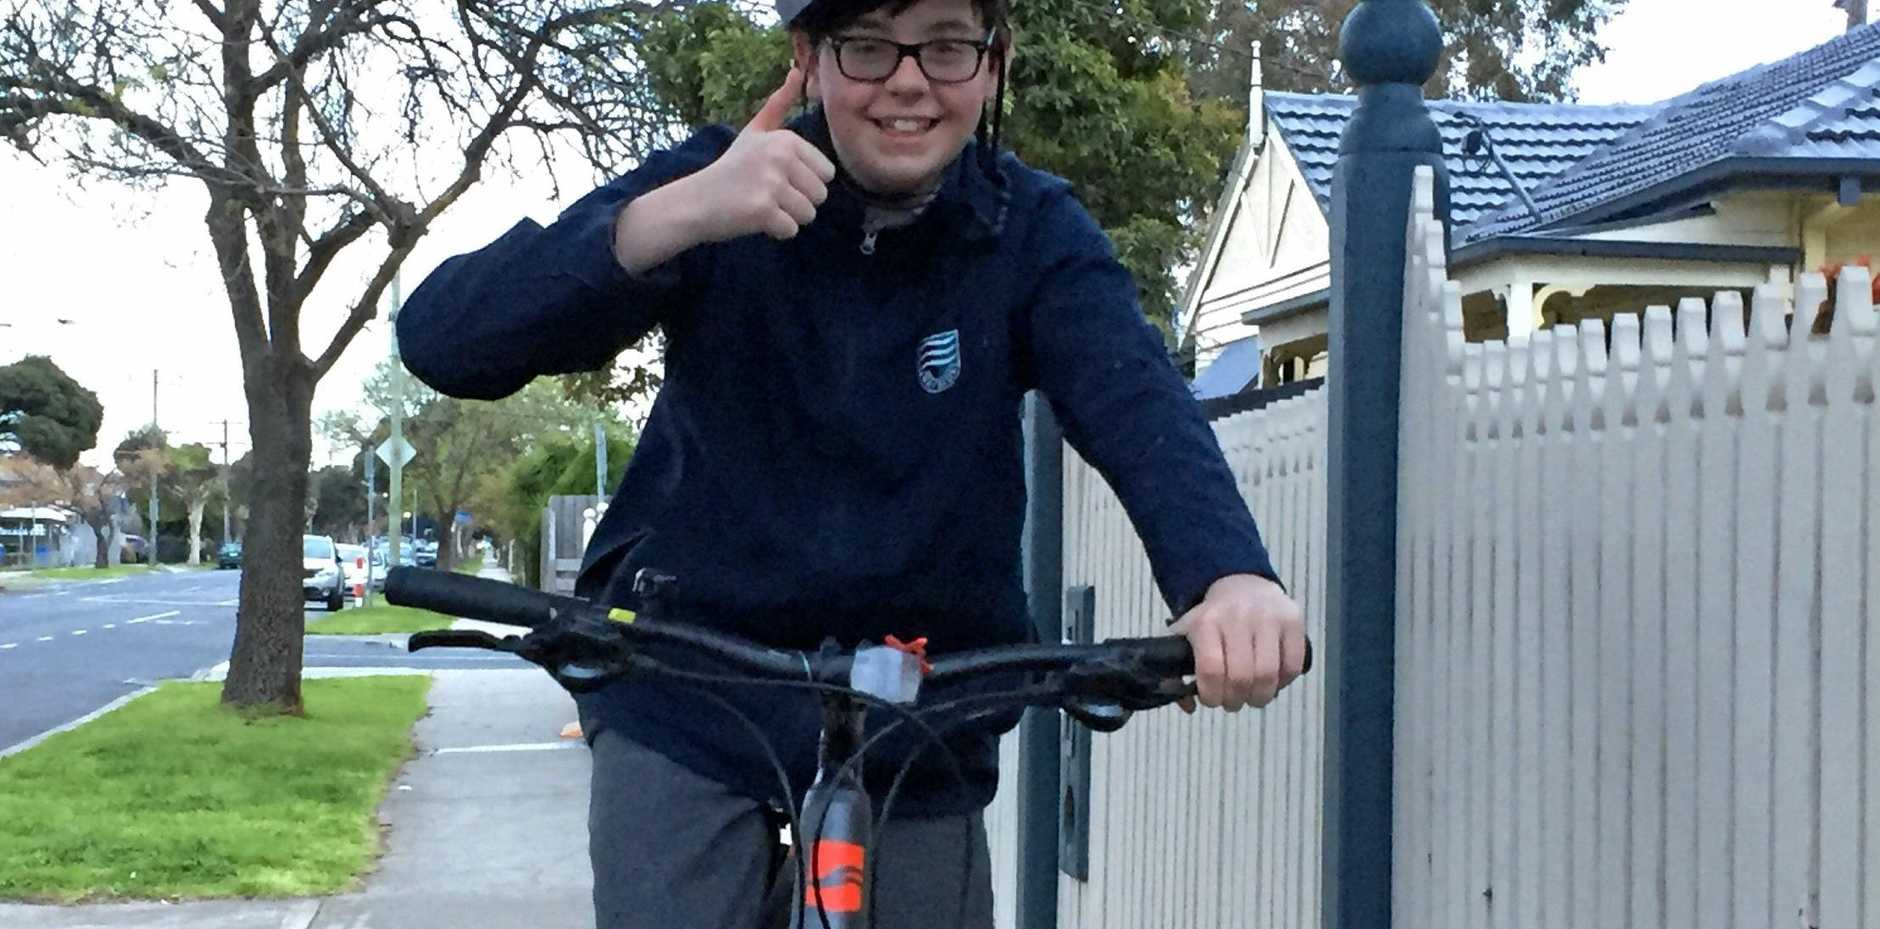 SAVED BY A TRUCKIE: Callum Simpson is back on his bike again after a heroic truckie saved him after a crash on a busy road.